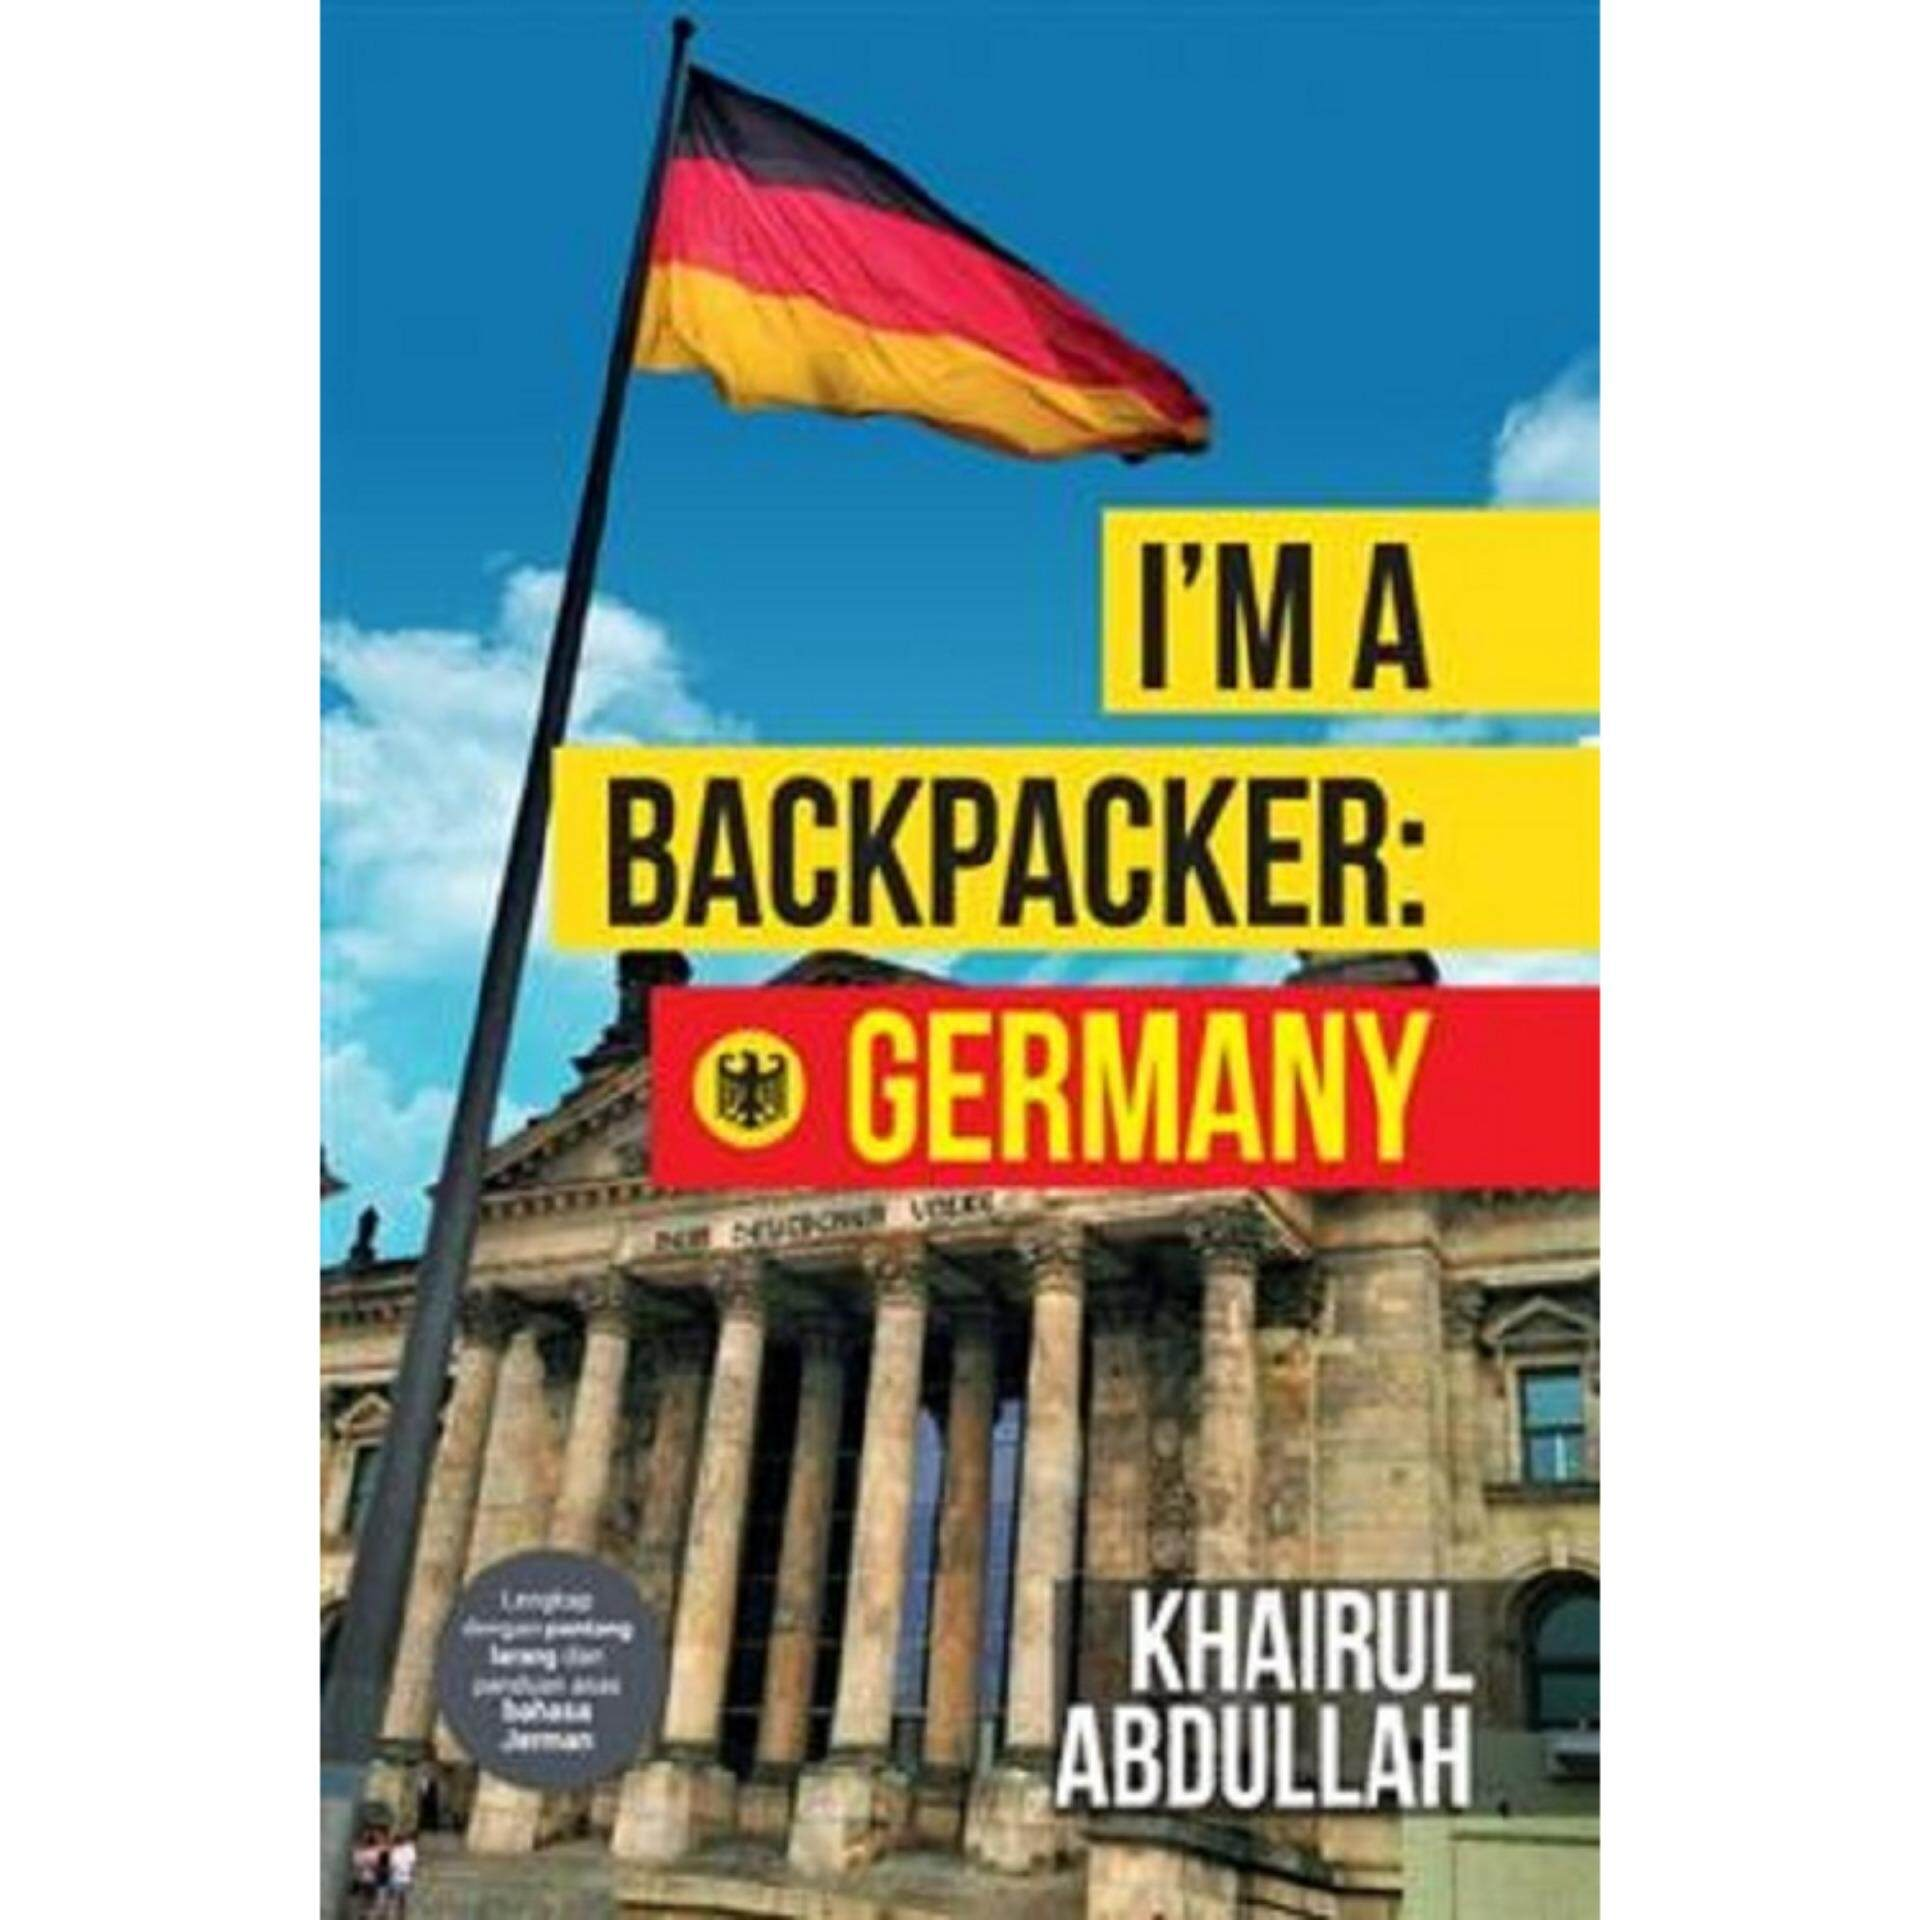 I'm a Backpacker: Germany: ISBN: 9789673693573: Author by: Khairul Abdullah